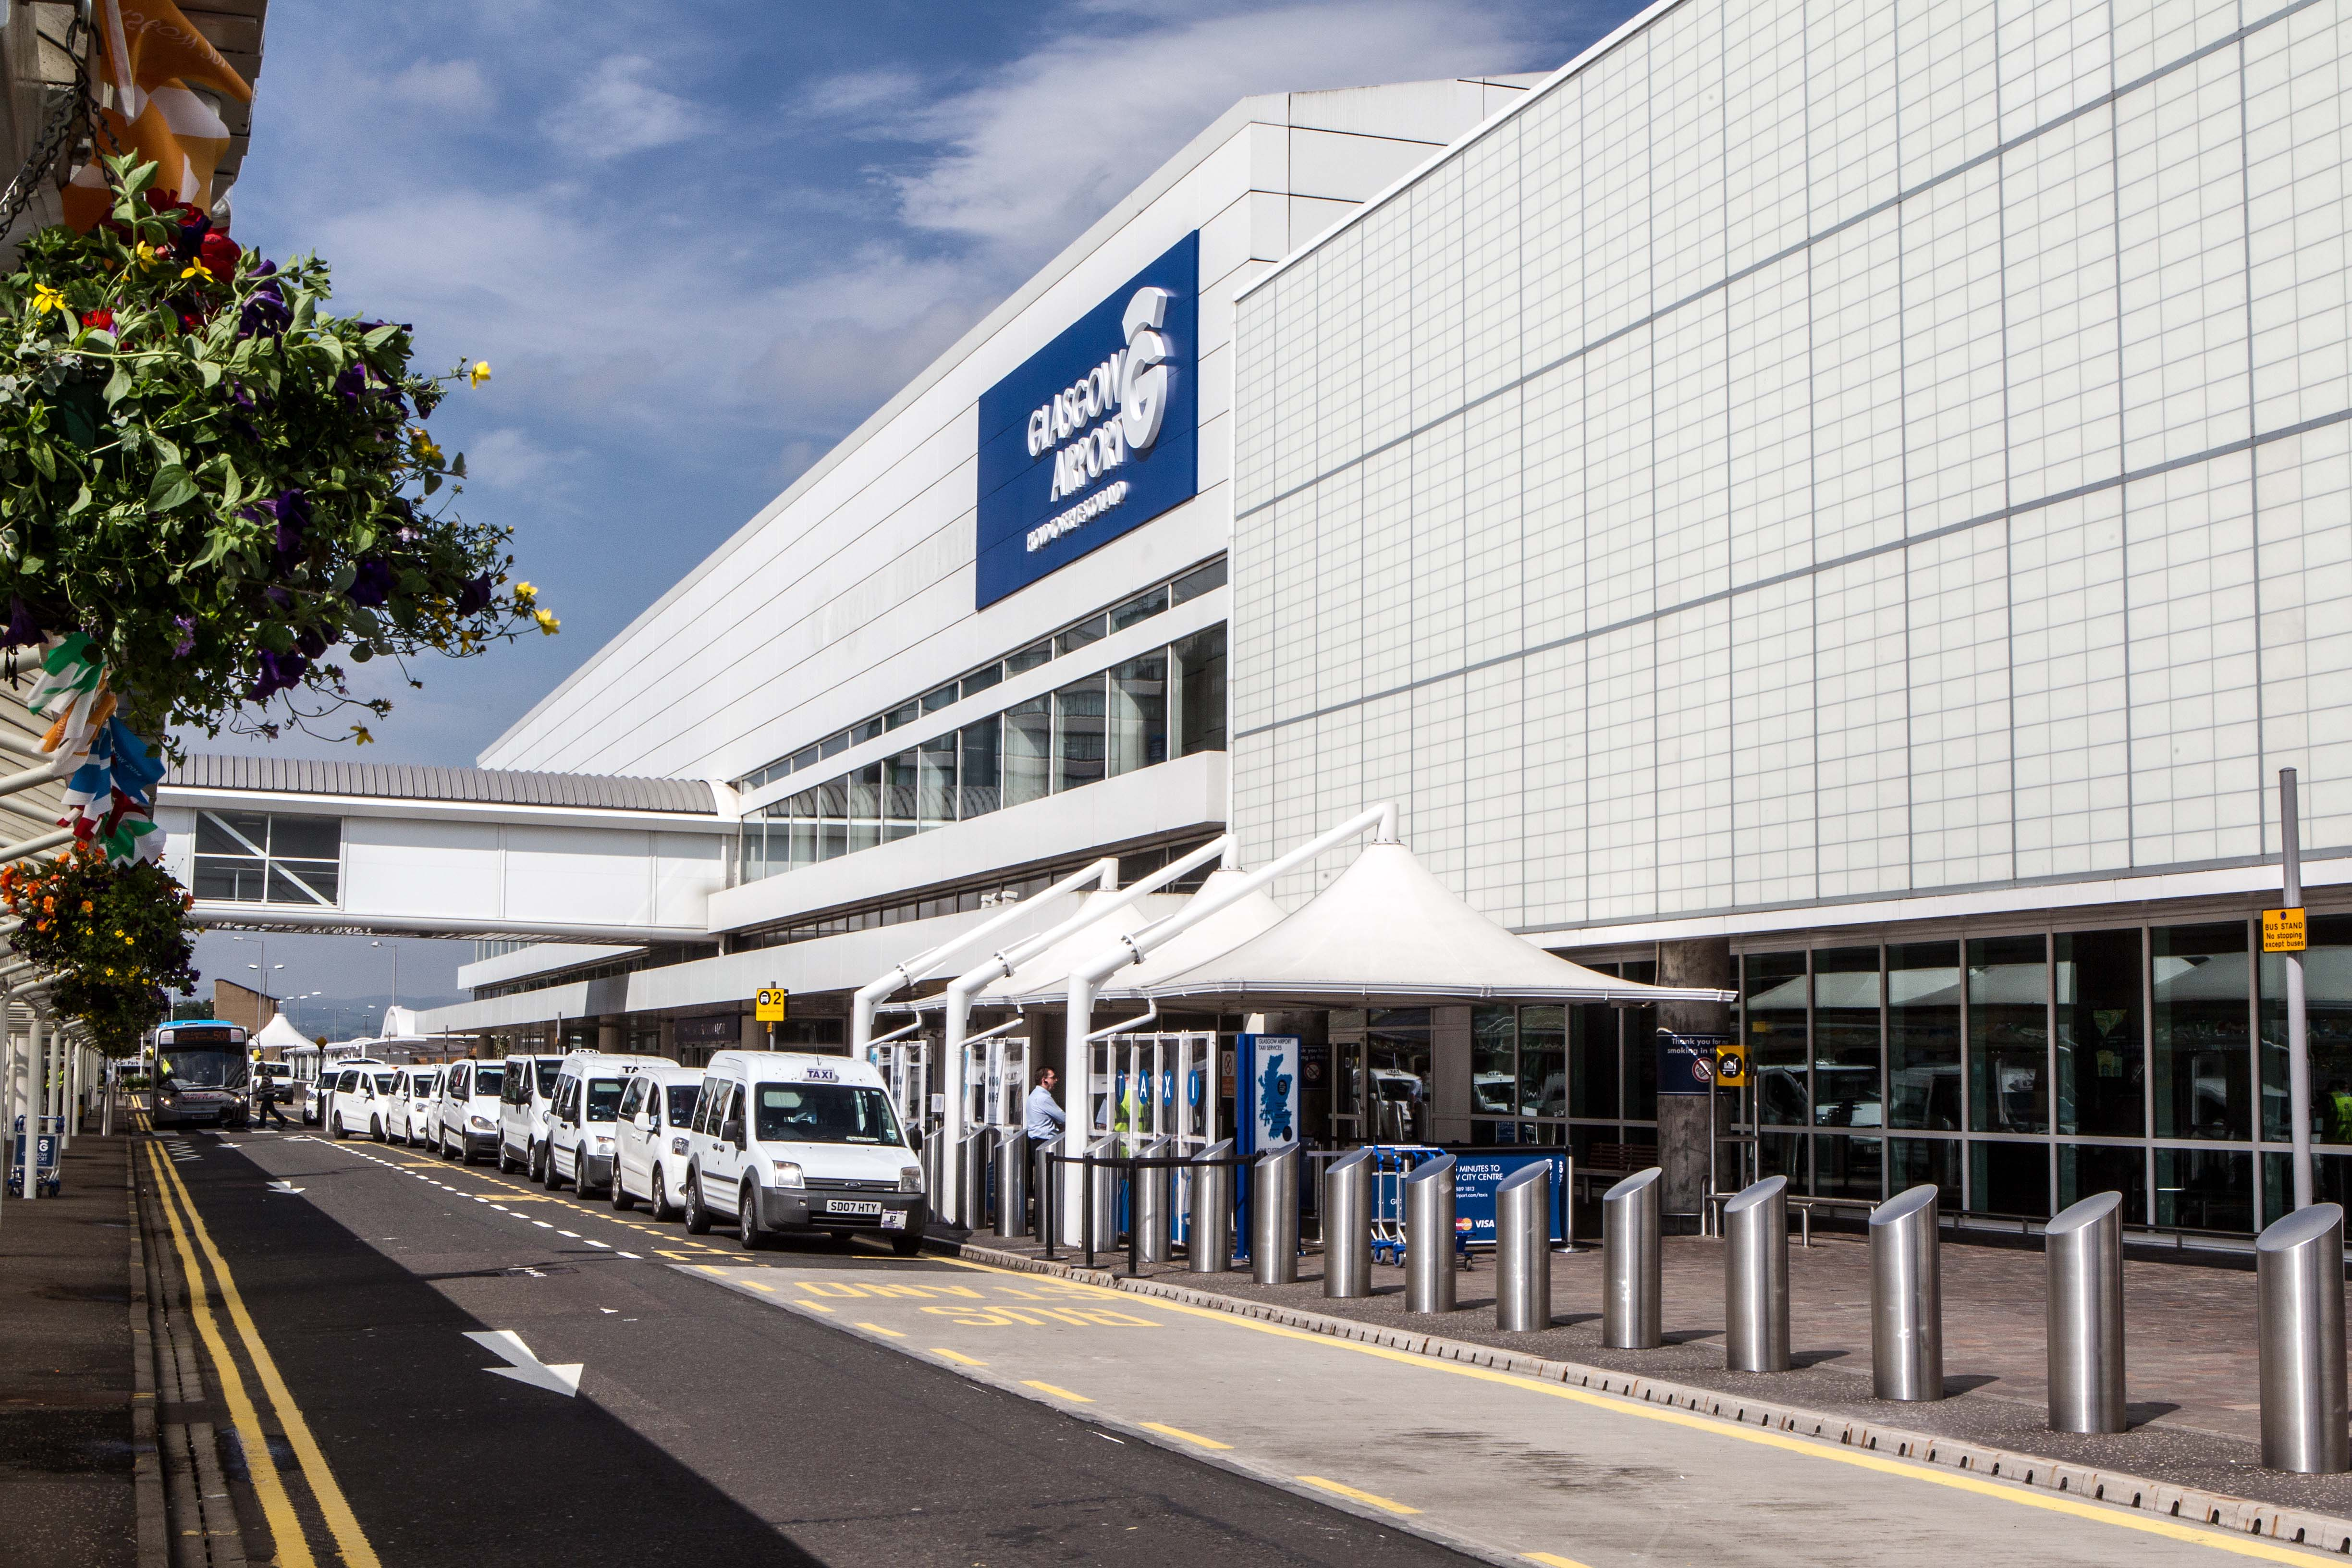 Hotel And Park Glasgow Airport